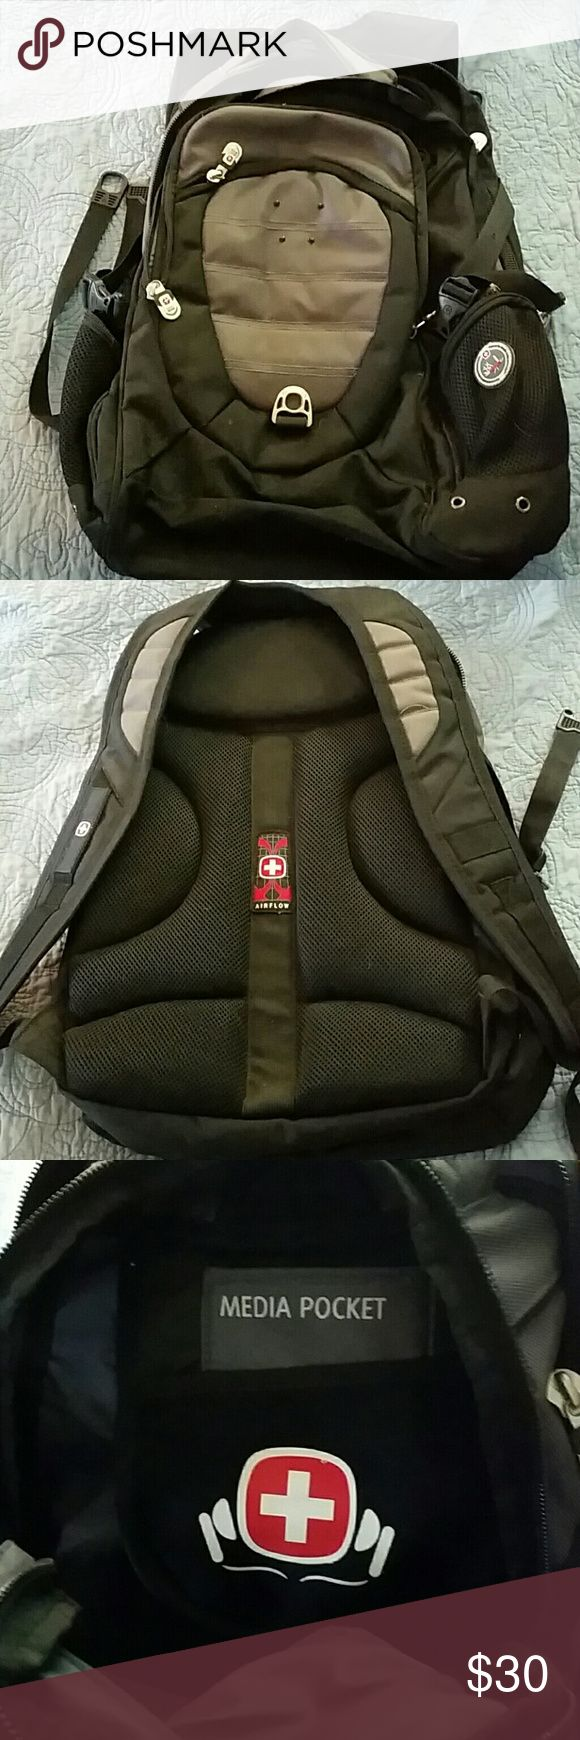 Swiss Gear backpack Nice backpack with side mesh pockets, laptop spot, pens, media pockets, many, many more pockets SwissGear Bags Backpacks